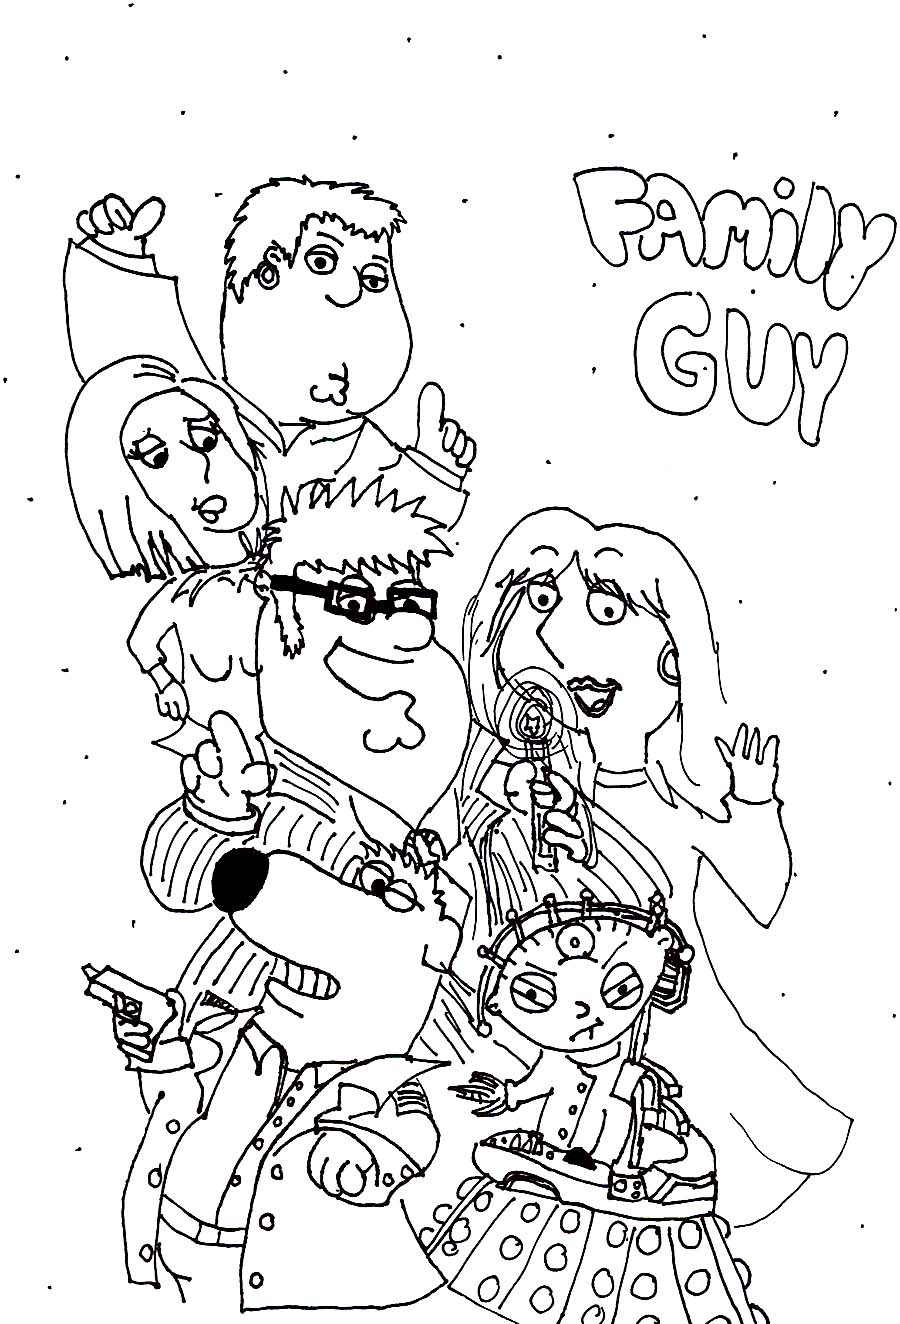 Free Printable Coloring Pages Of Family Guy Coloring Pages Ideas